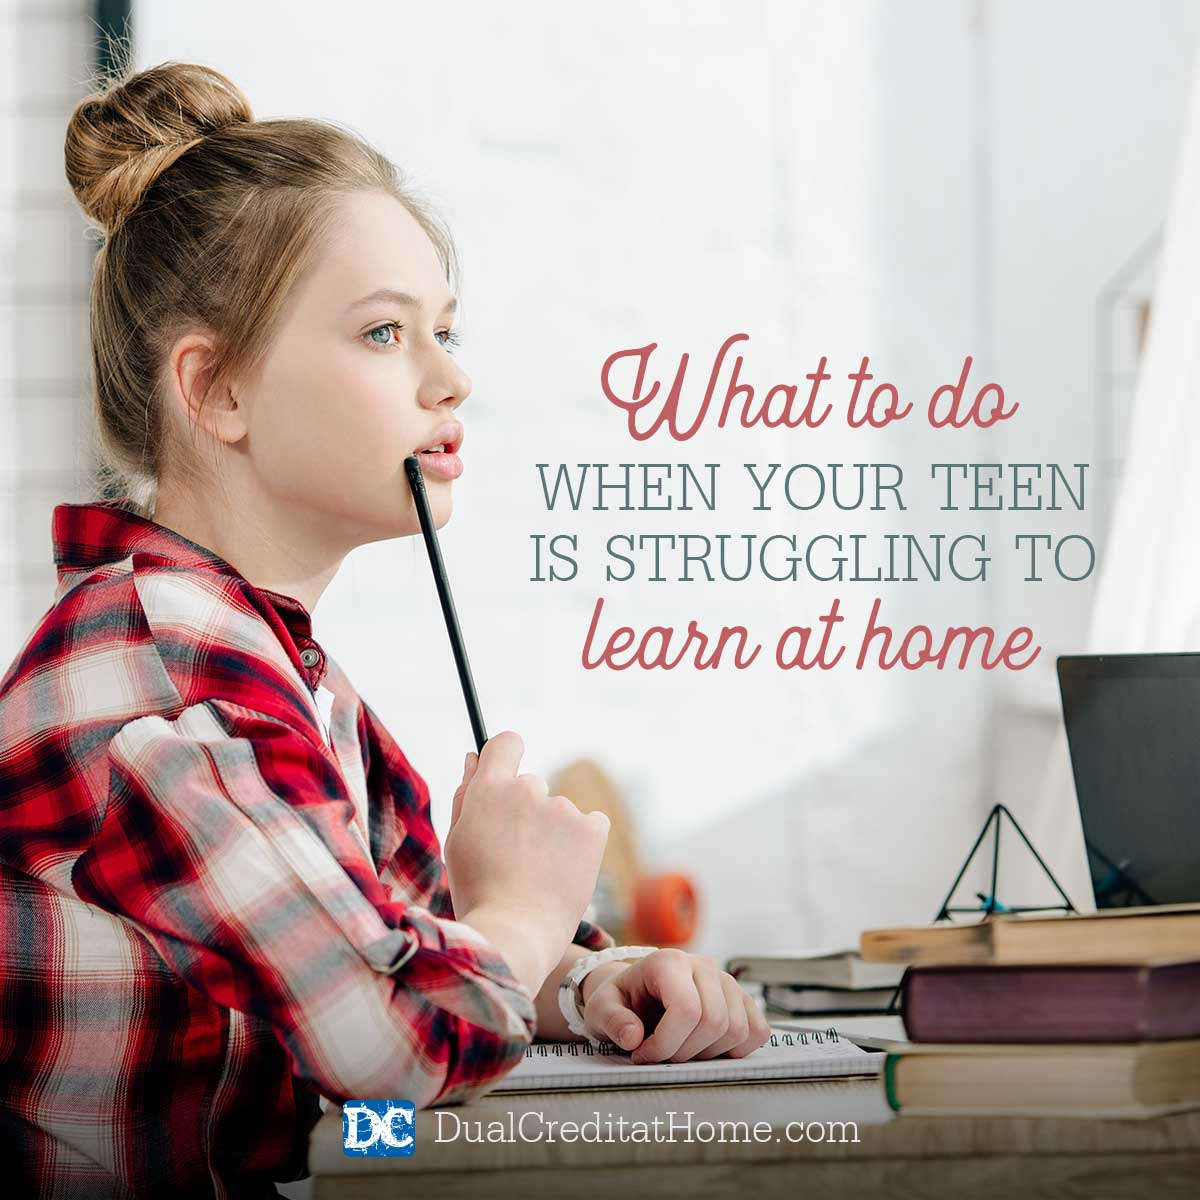 What to Do When Your Teen is Struggling to Learn at Home